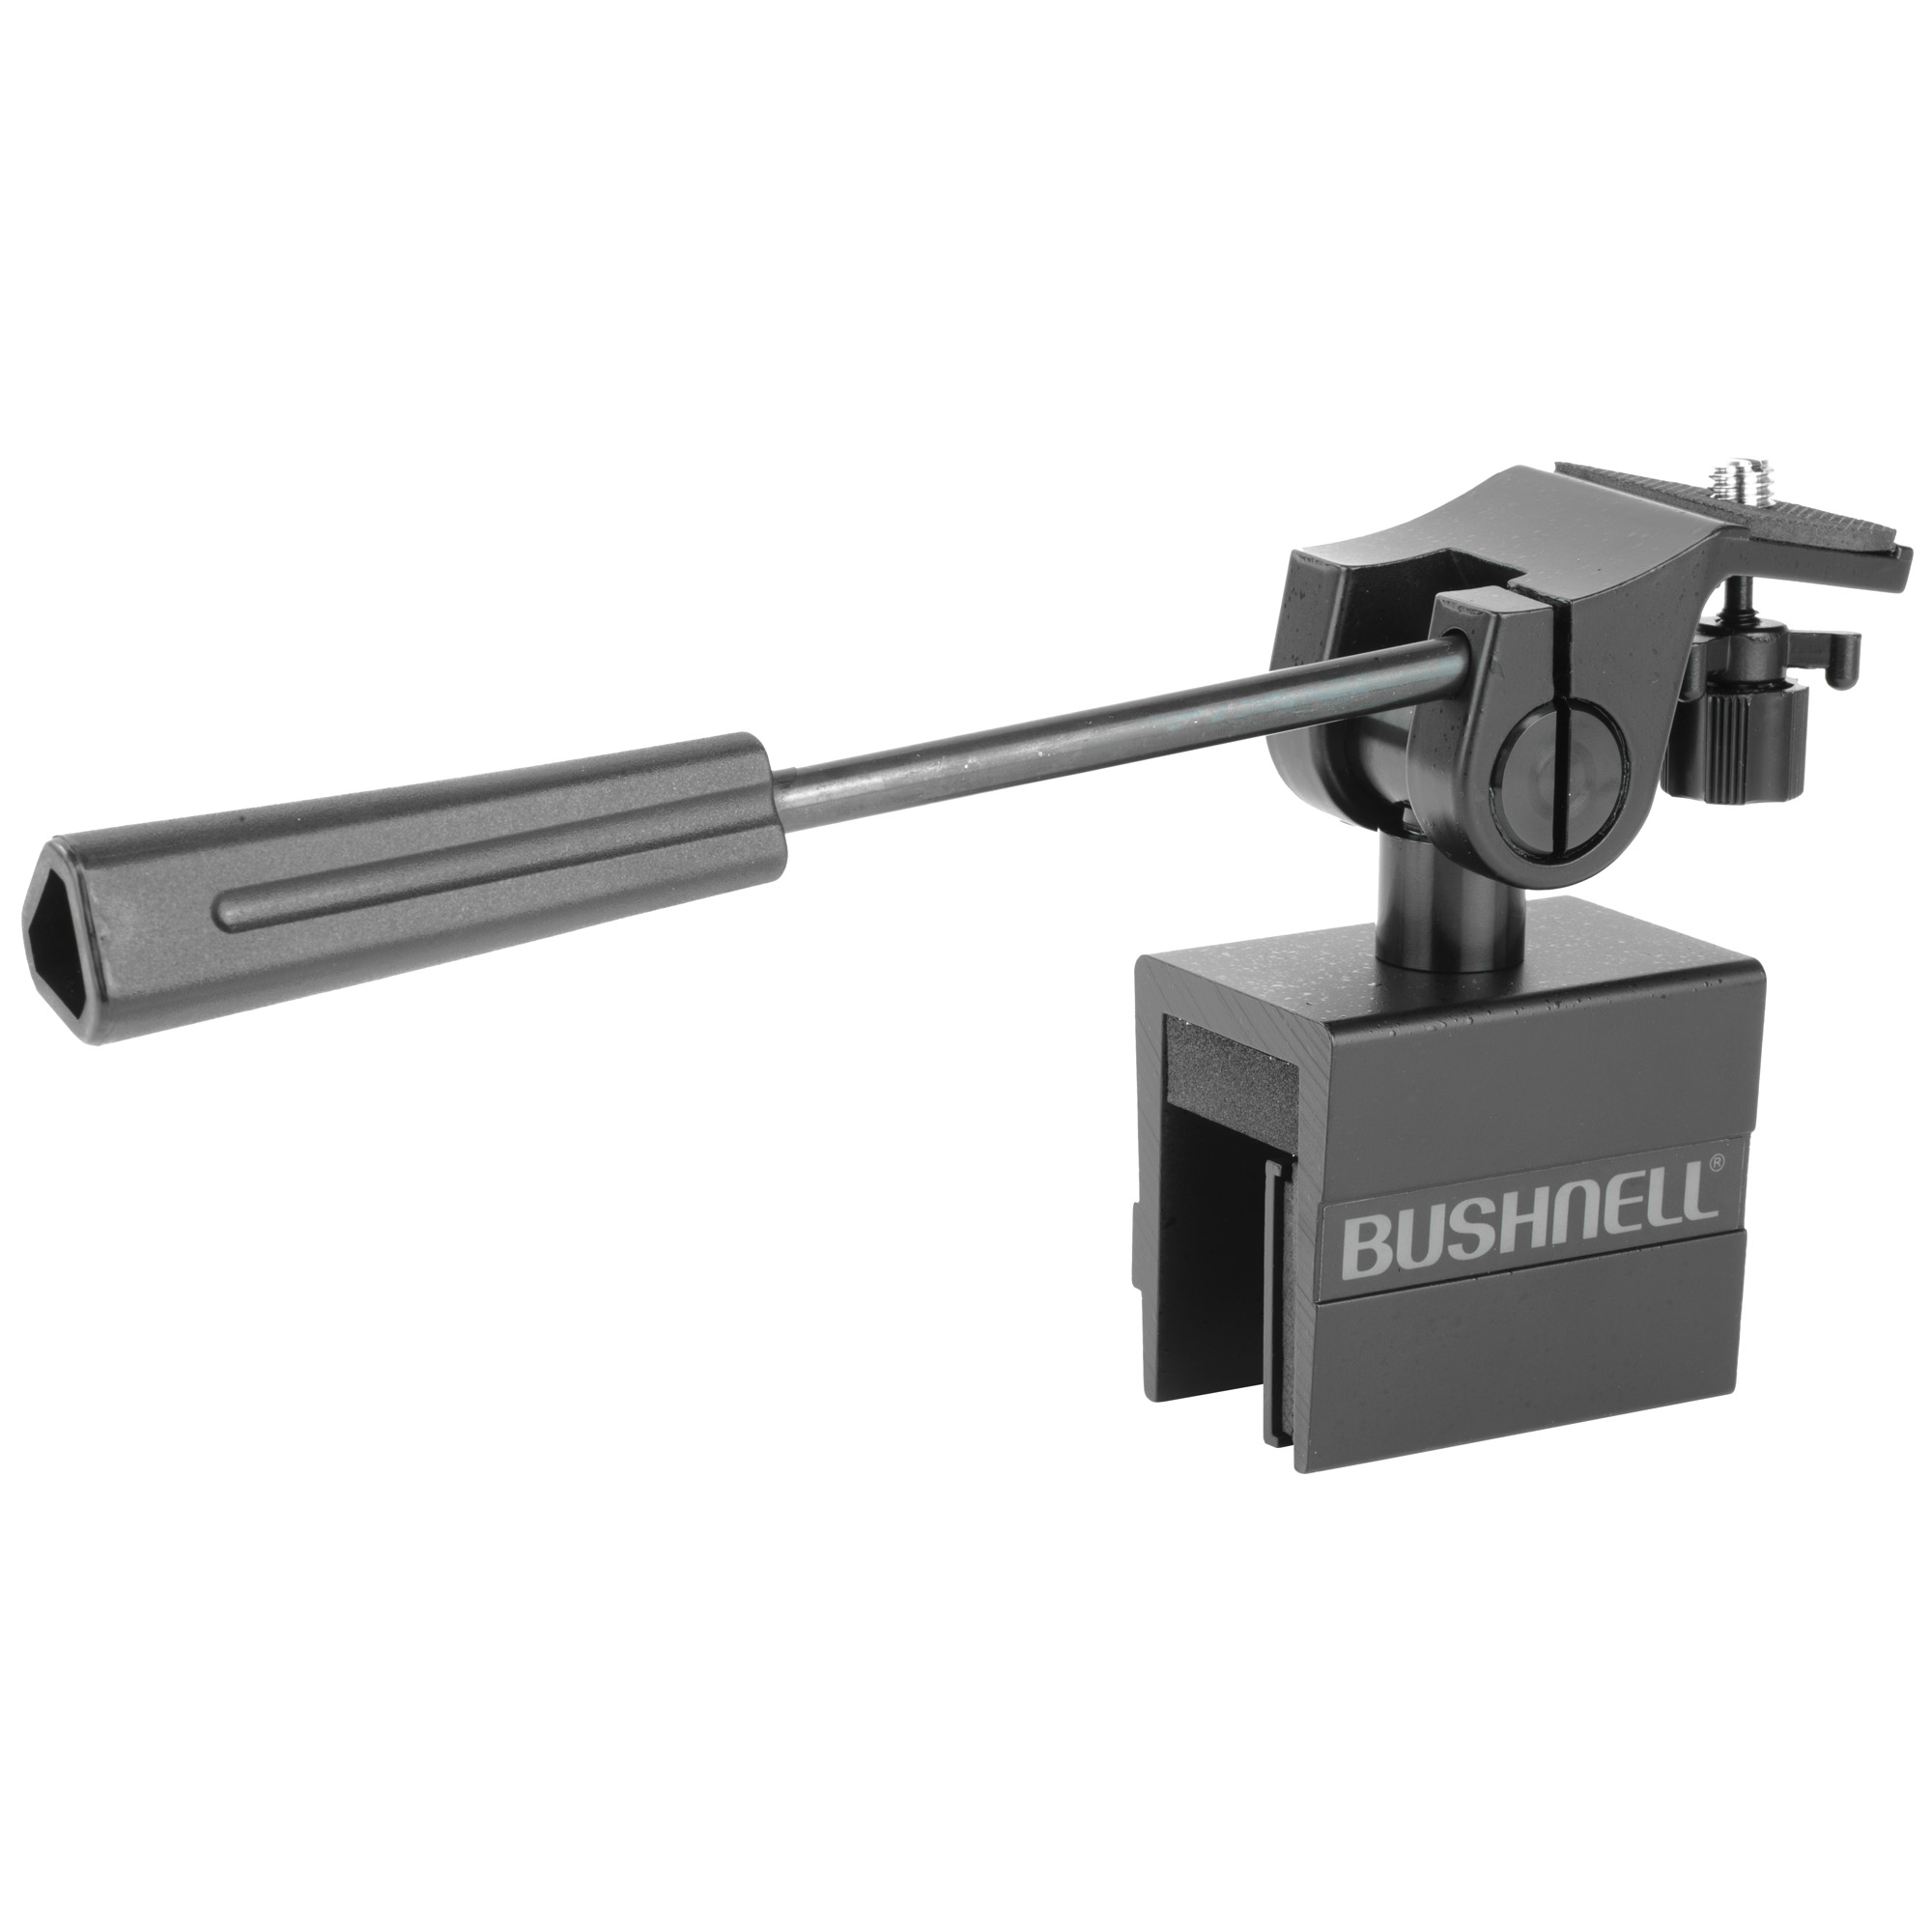 """The Bushnell Spotting Scope Car Window Mount is a great accessory for hunters and sportsmen who cover a lot of ground in a day. When you are on the run moving from place to place in your car and you want your spotting scope handy at all times"""" there is no substitute to a car window mount. This mount easily attaches and releases from any car window in your vehicle for use with any tripod adaptable device - spotting scope"""" camera"""" or binoculars."""